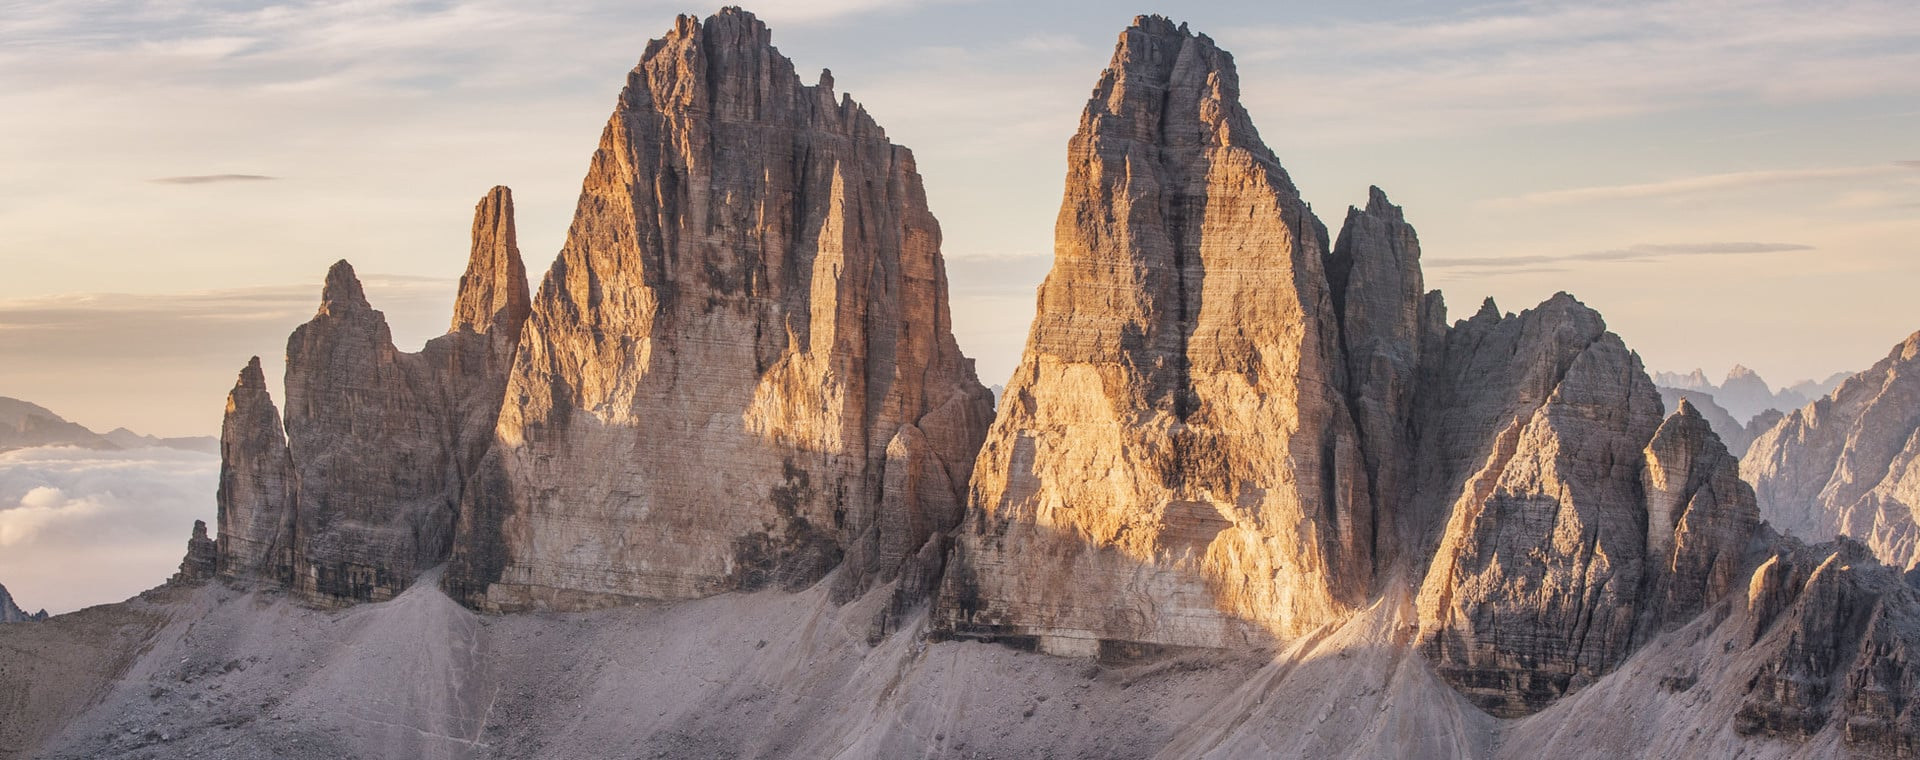 Dolomites: Legendary natural wonders